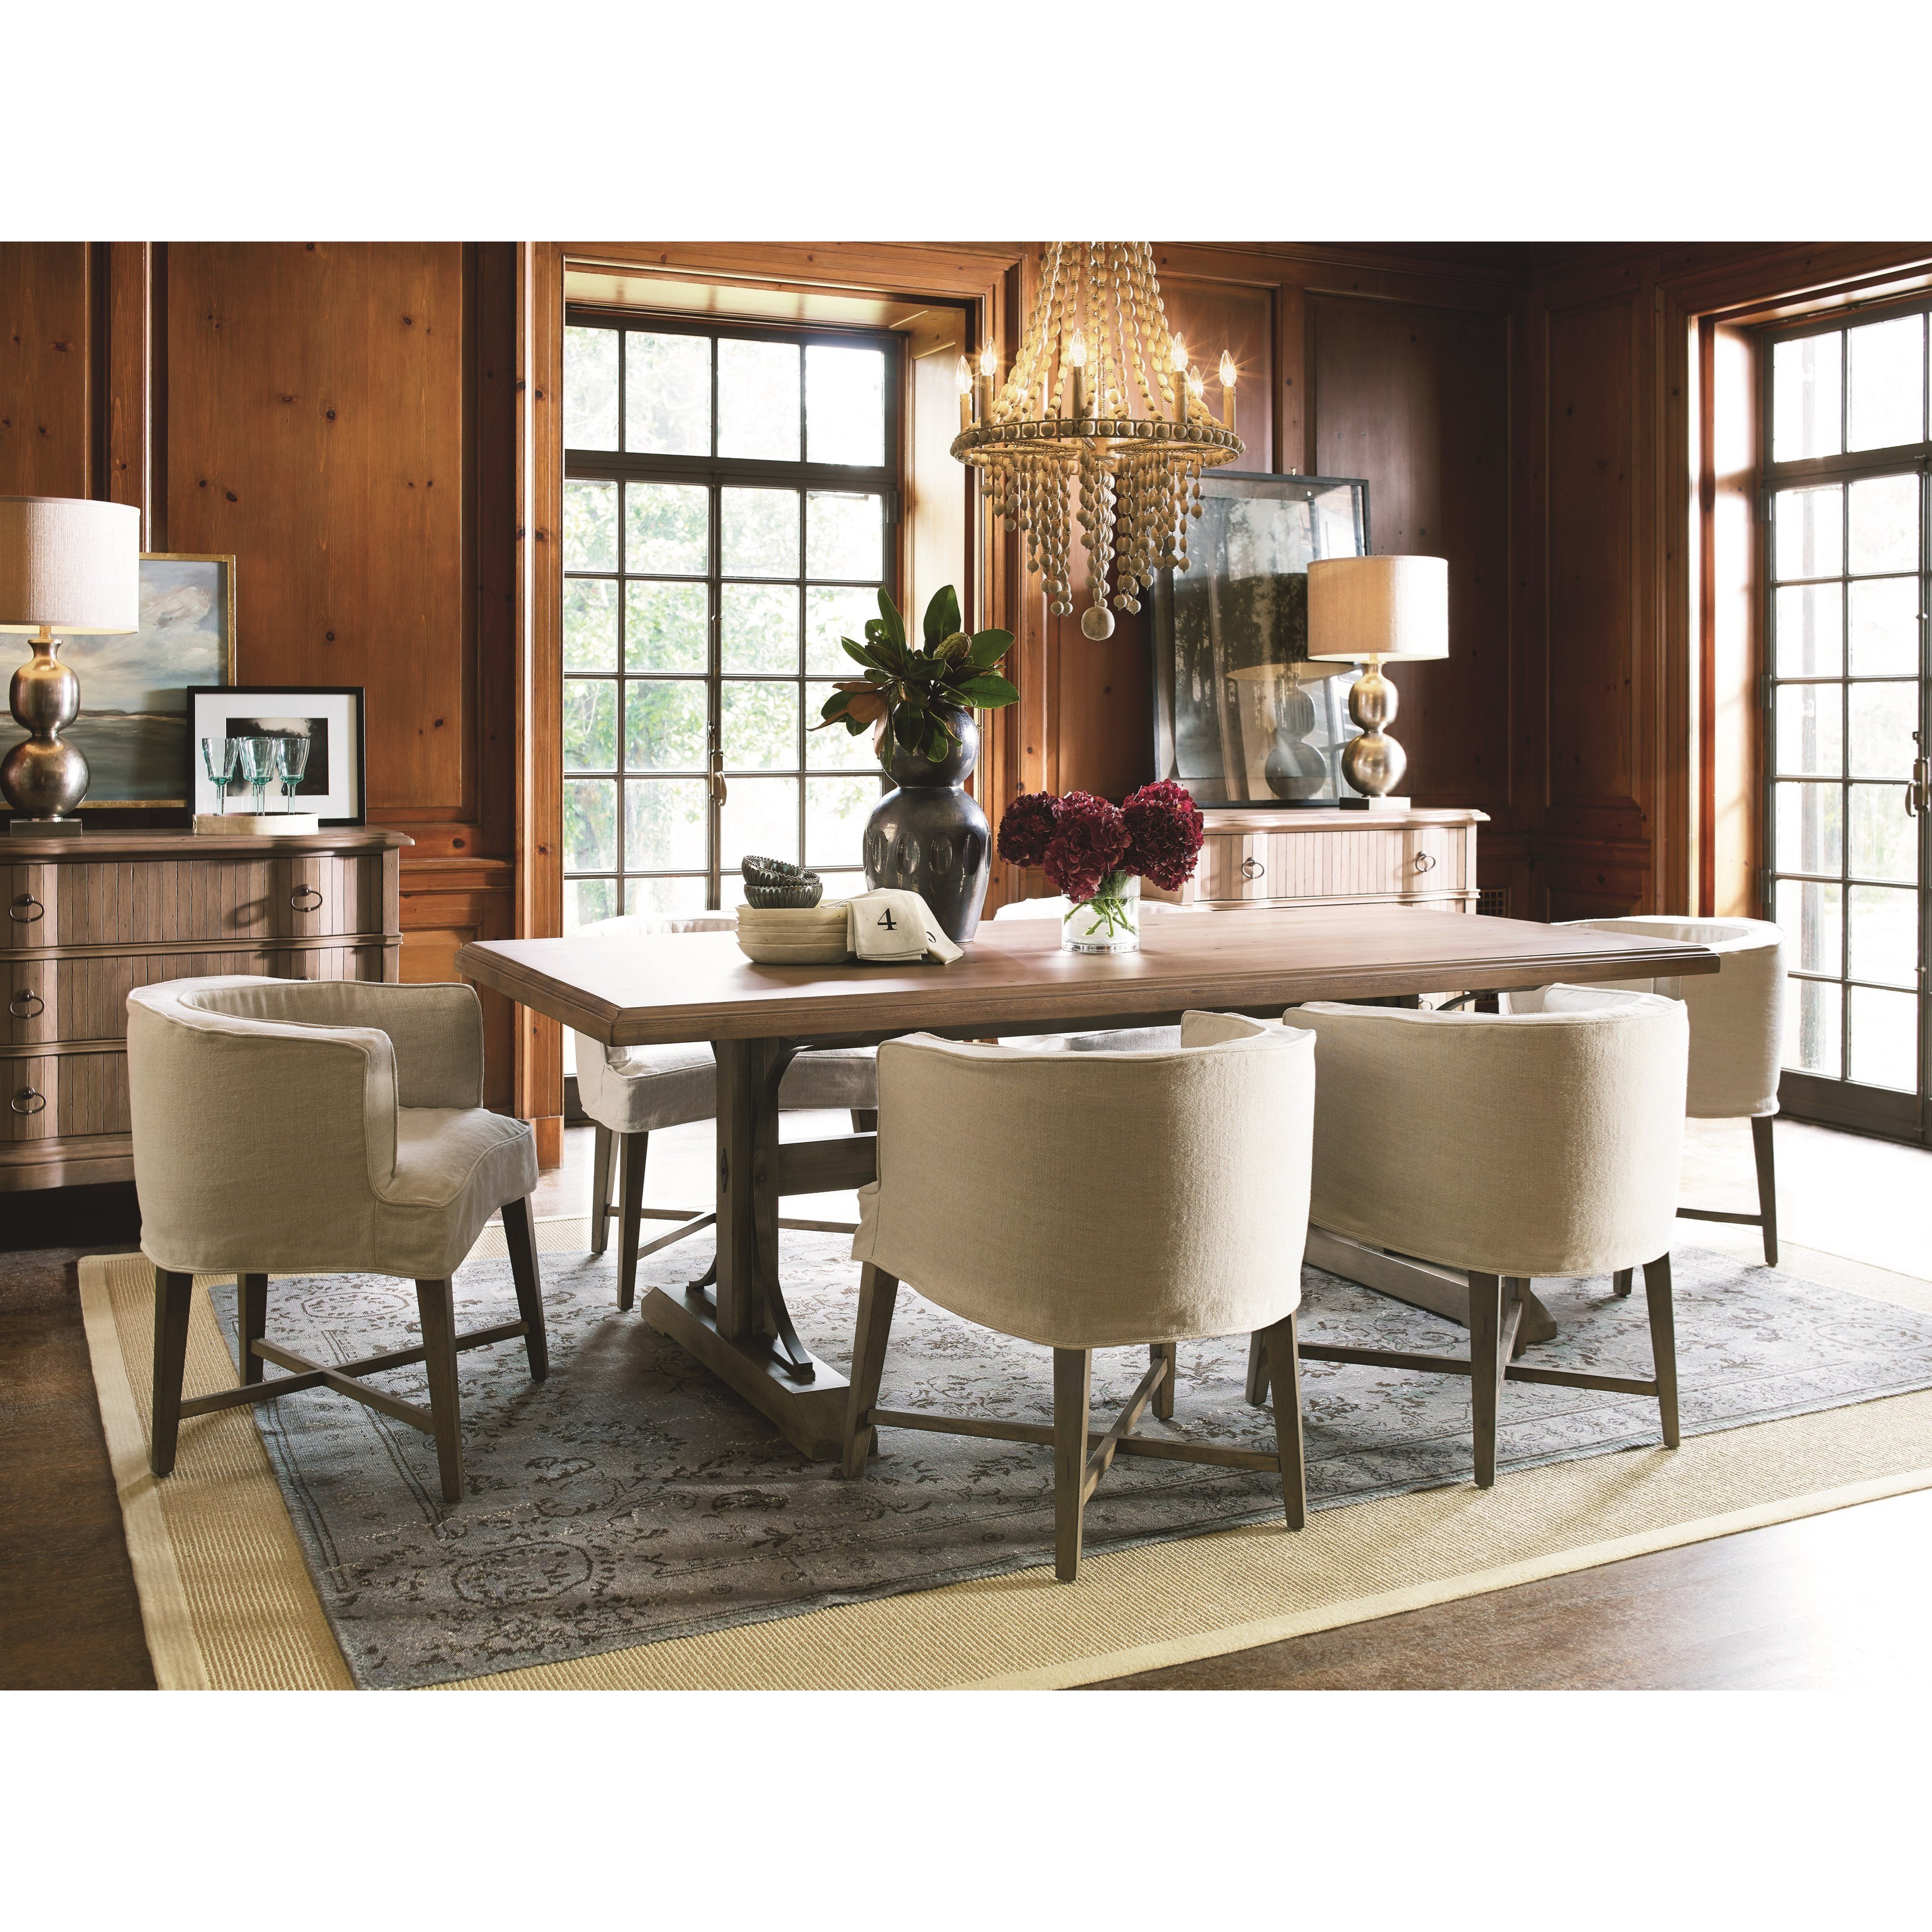 Universal Authenticity Formal Dining Room Group  - Item Number: 572 Dining Room Group 1